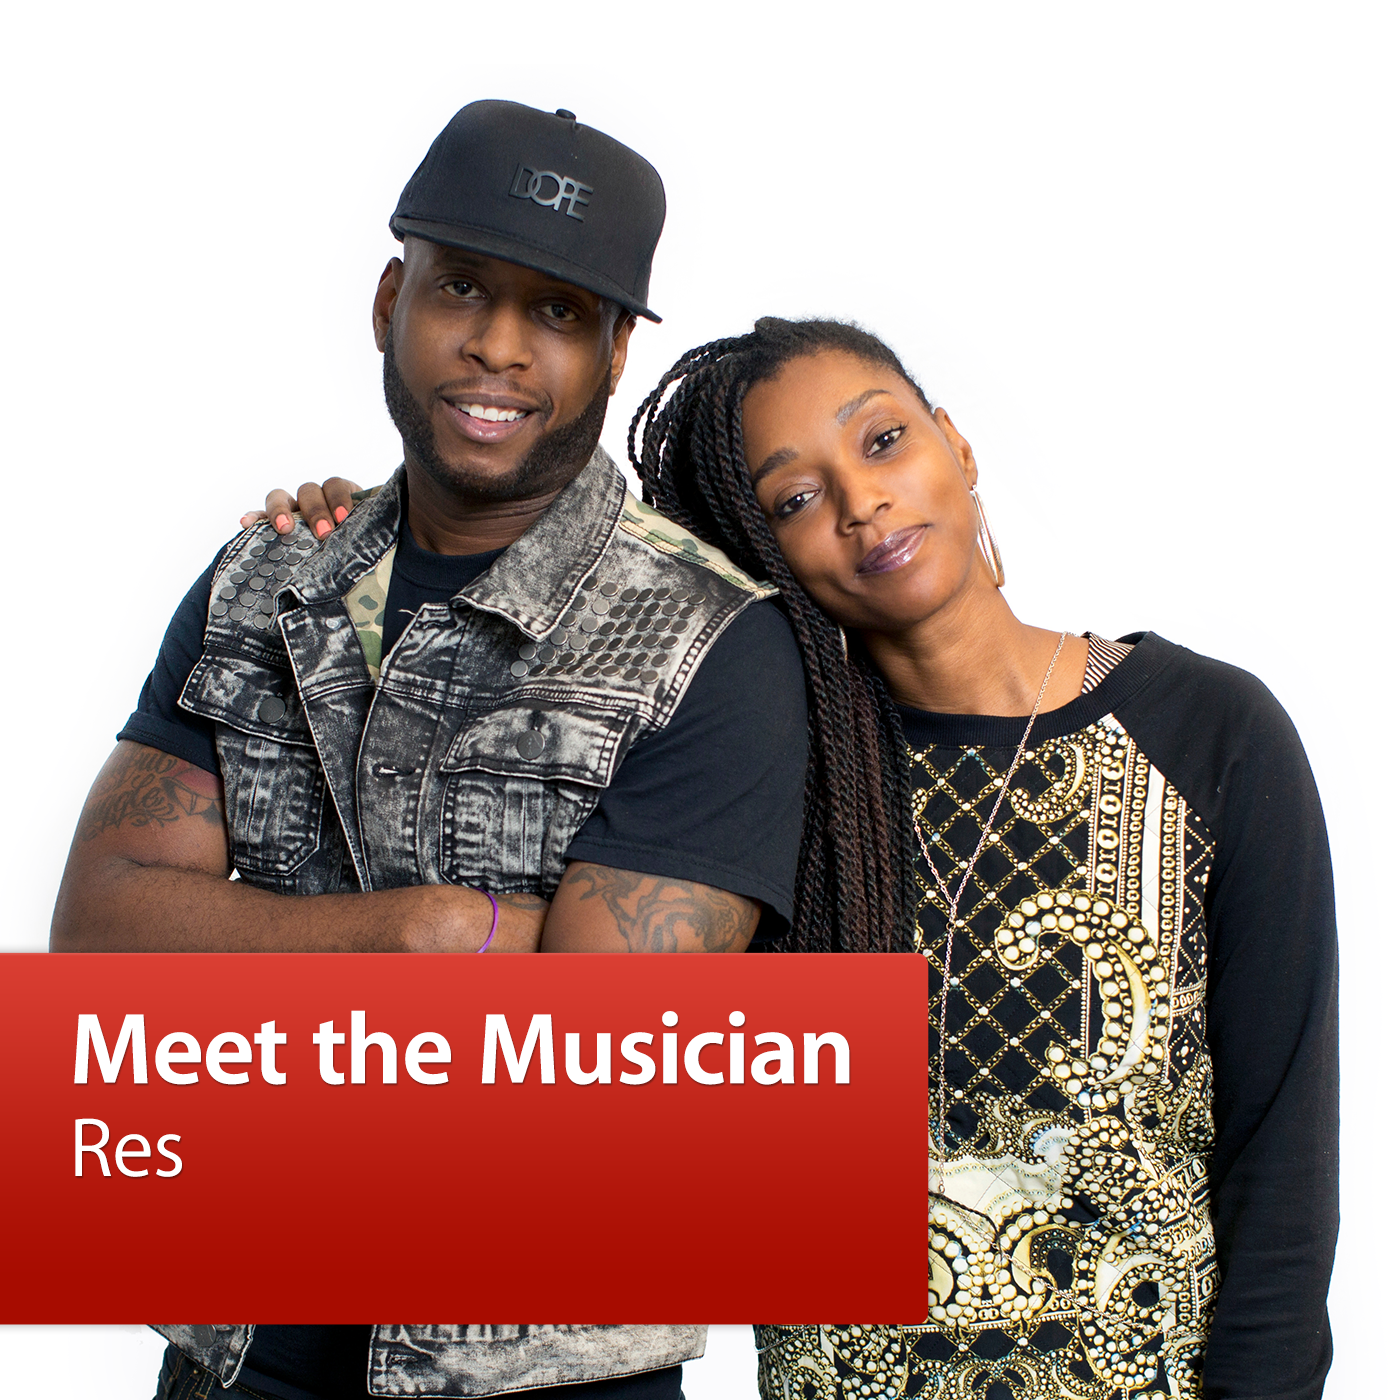 Res: Meet the Musician